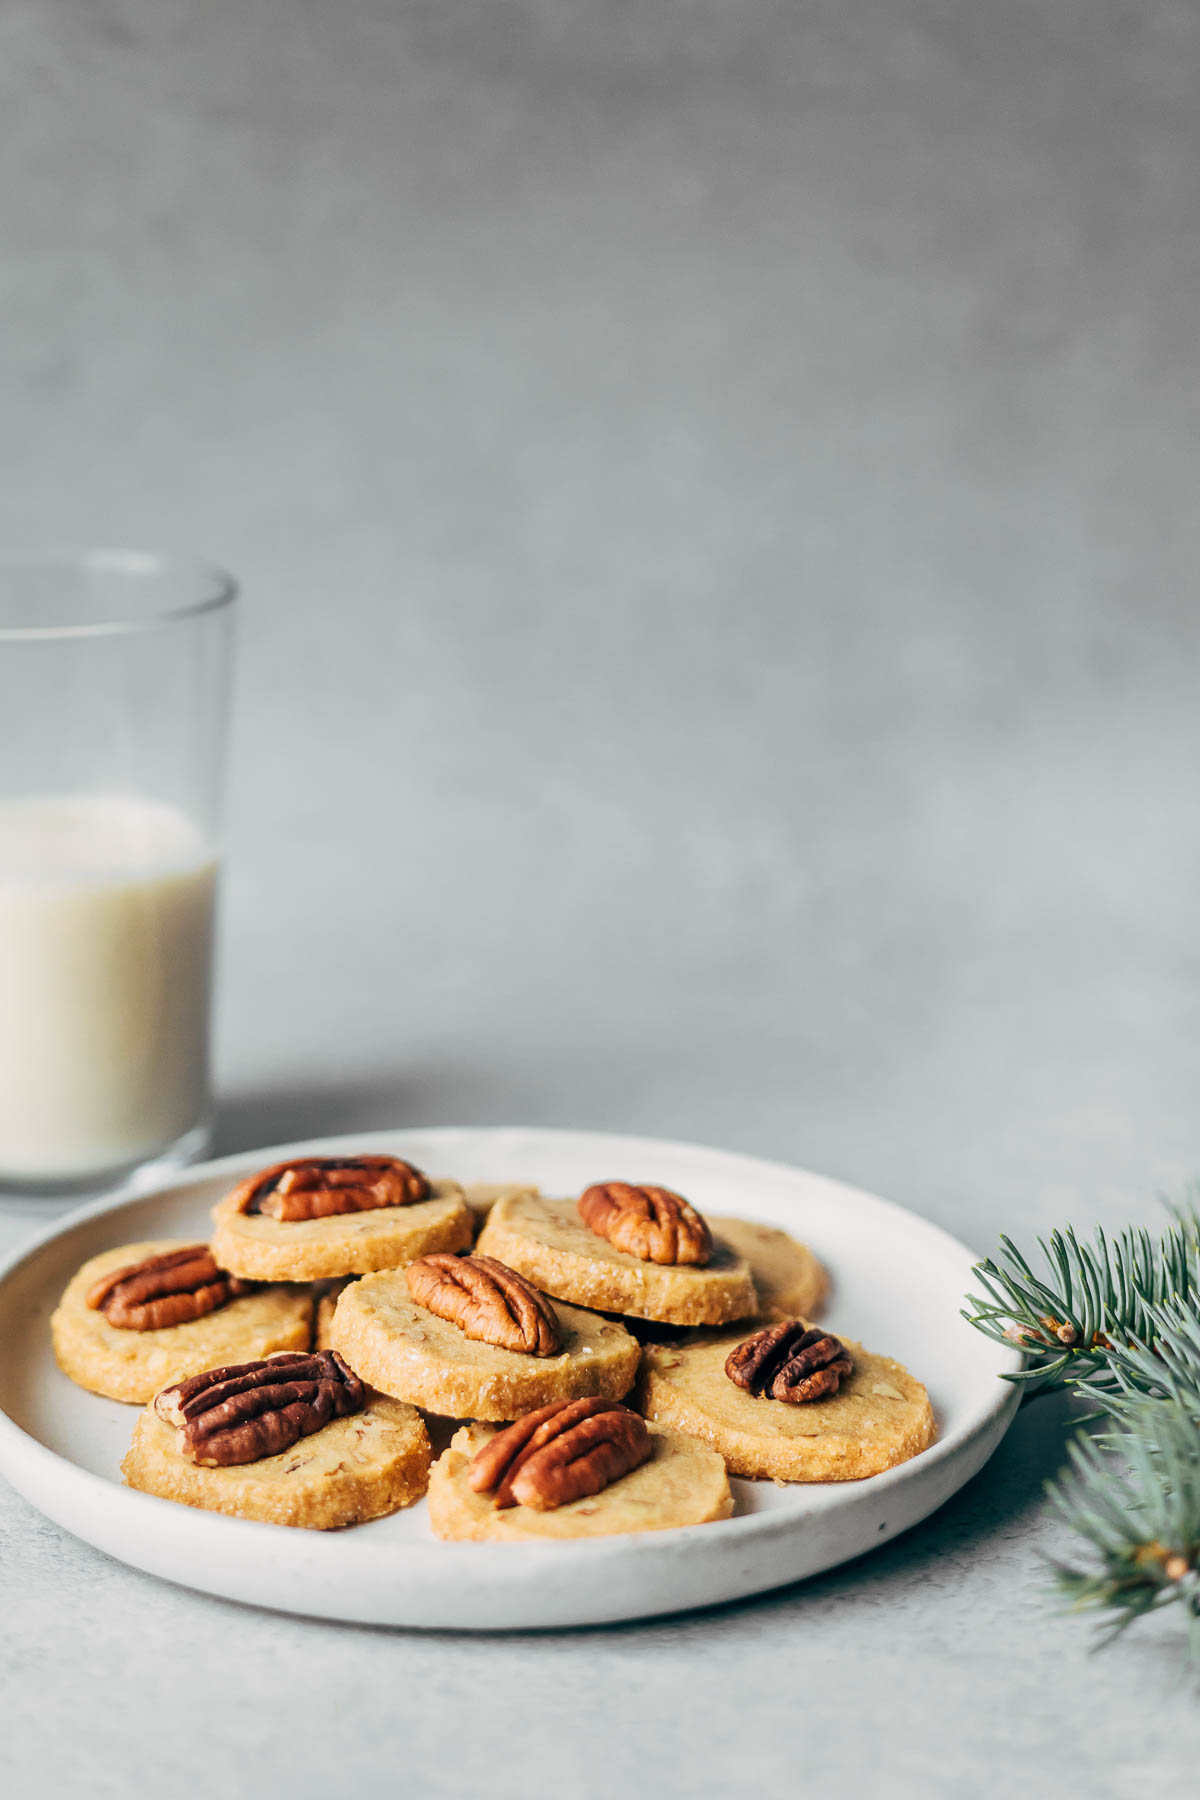 A plate of pecan shortbread cookies with a glass of milk in the background.